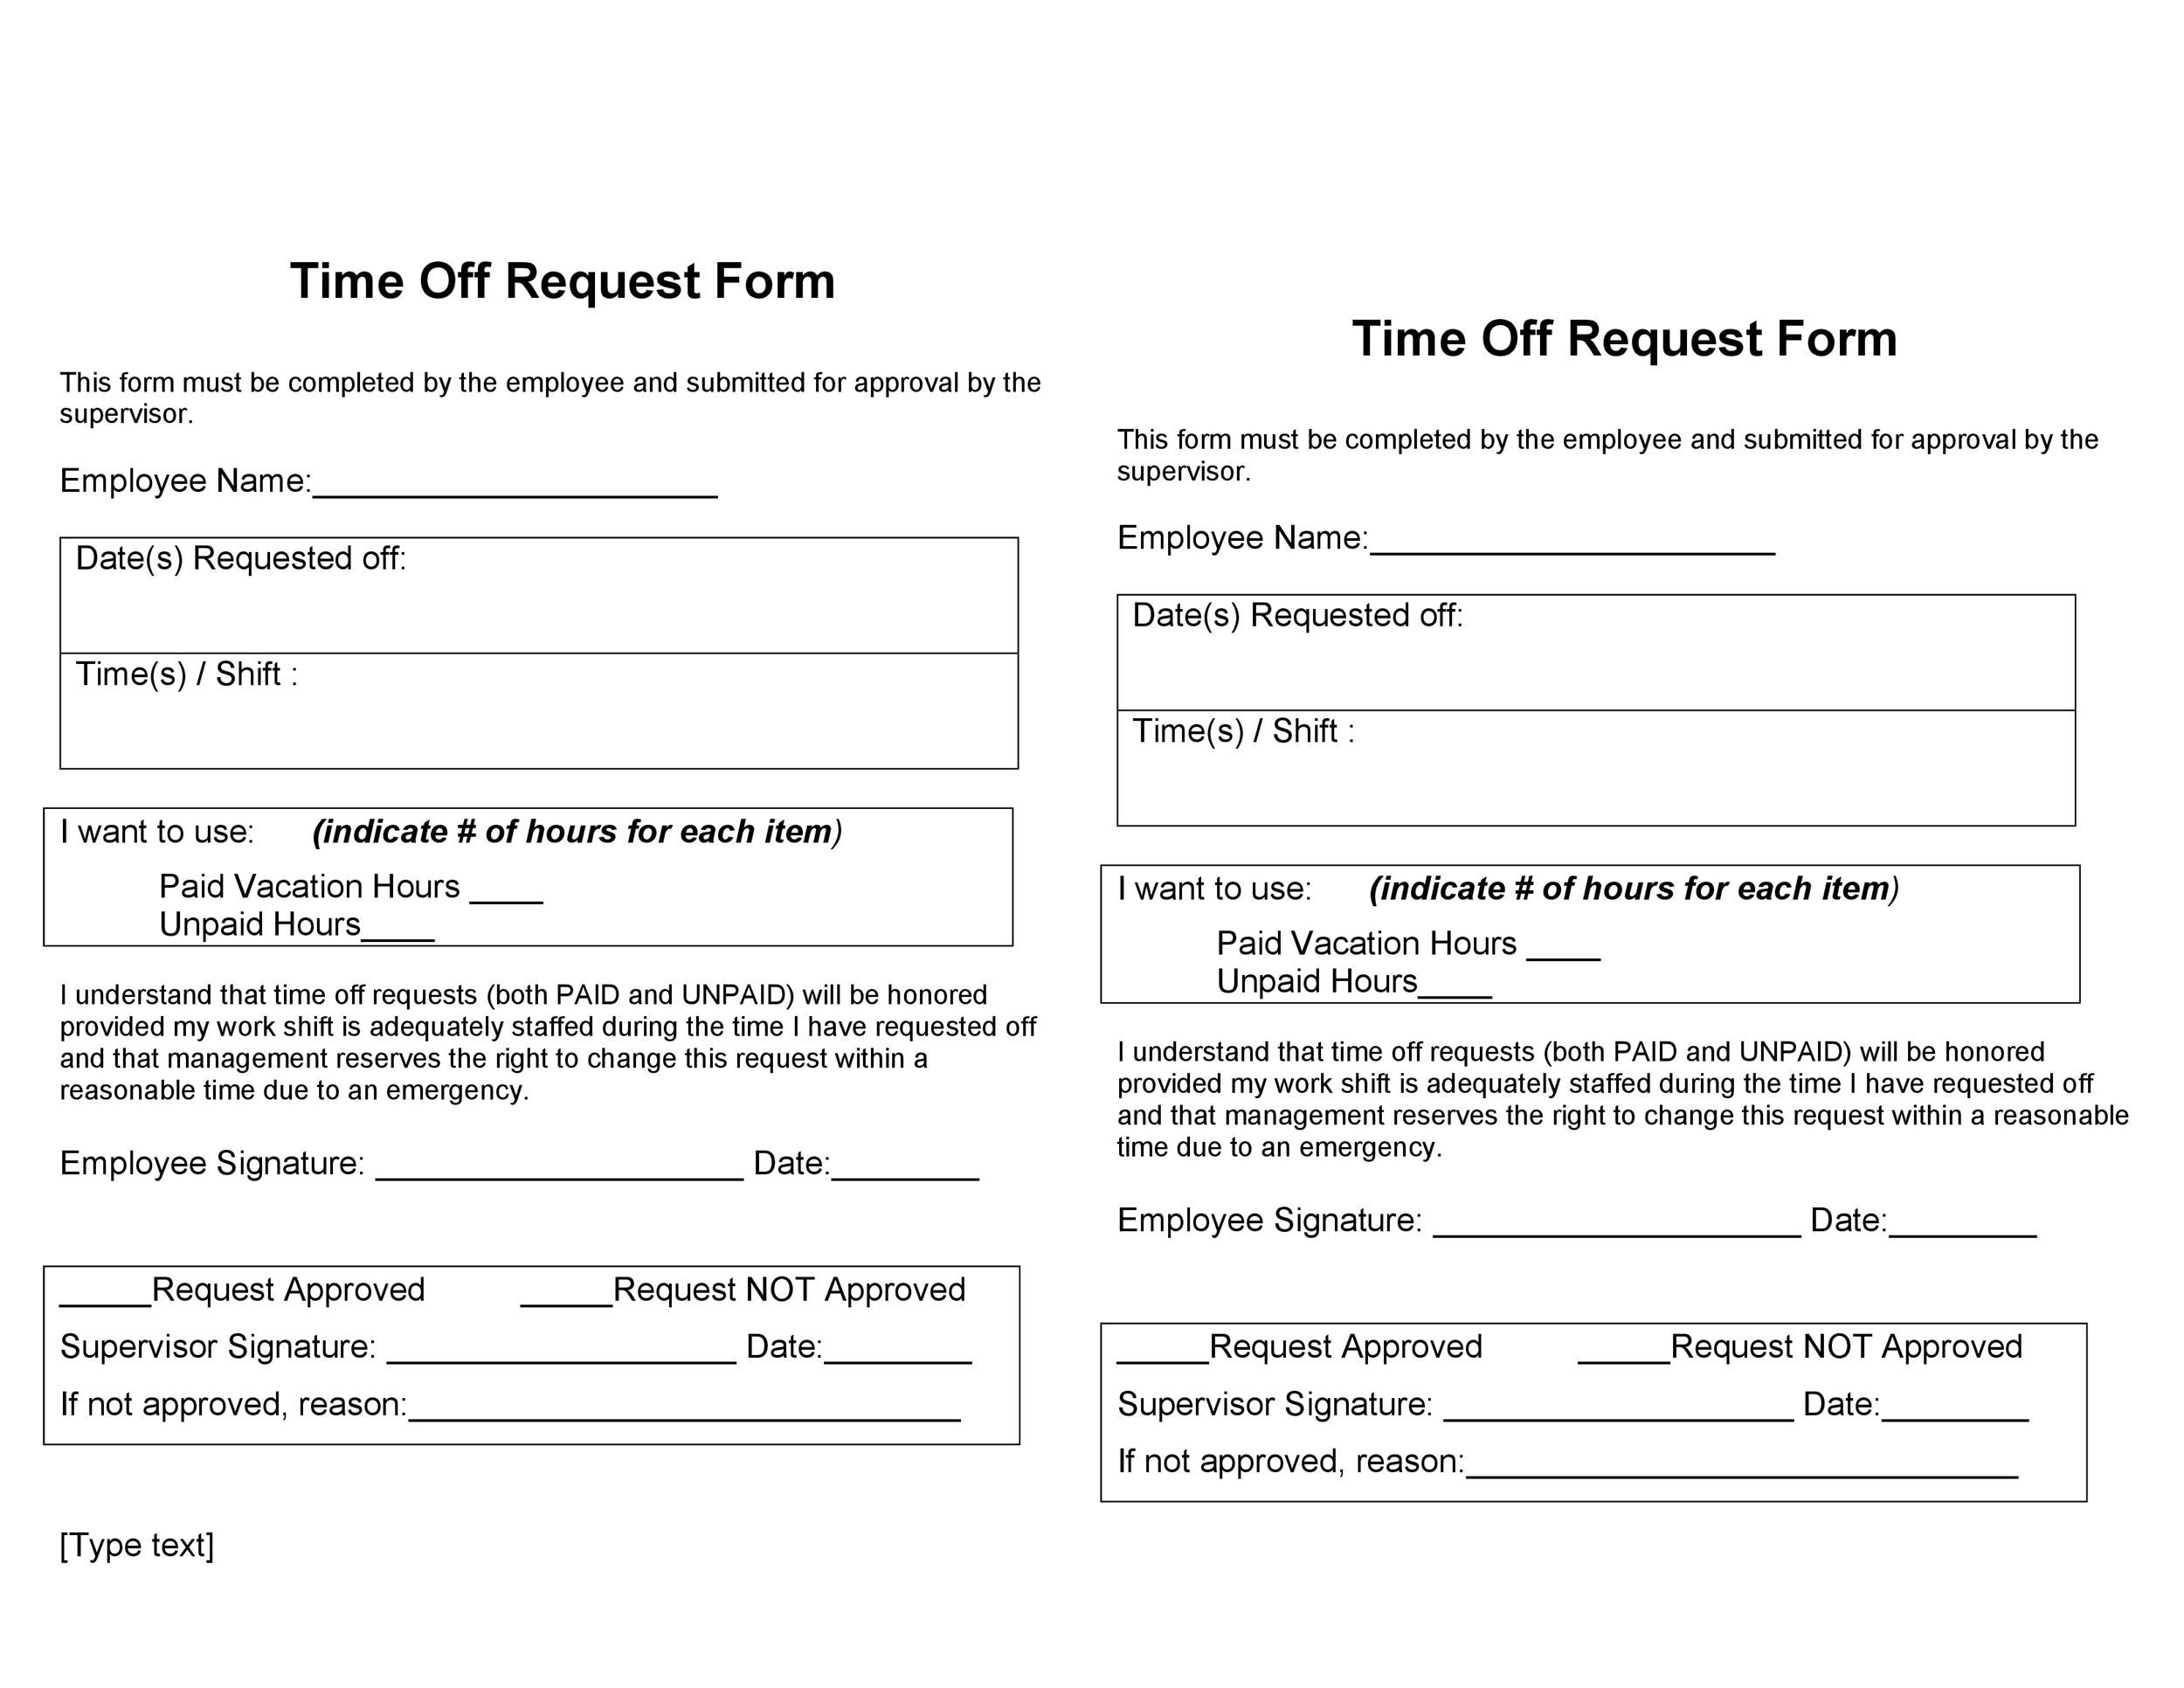 Be an efficient hr manager using this free payroll change notice form template to send payroll change notices to your employees. 40 Effective Time Off Request Forms Templates Á… Templatelab